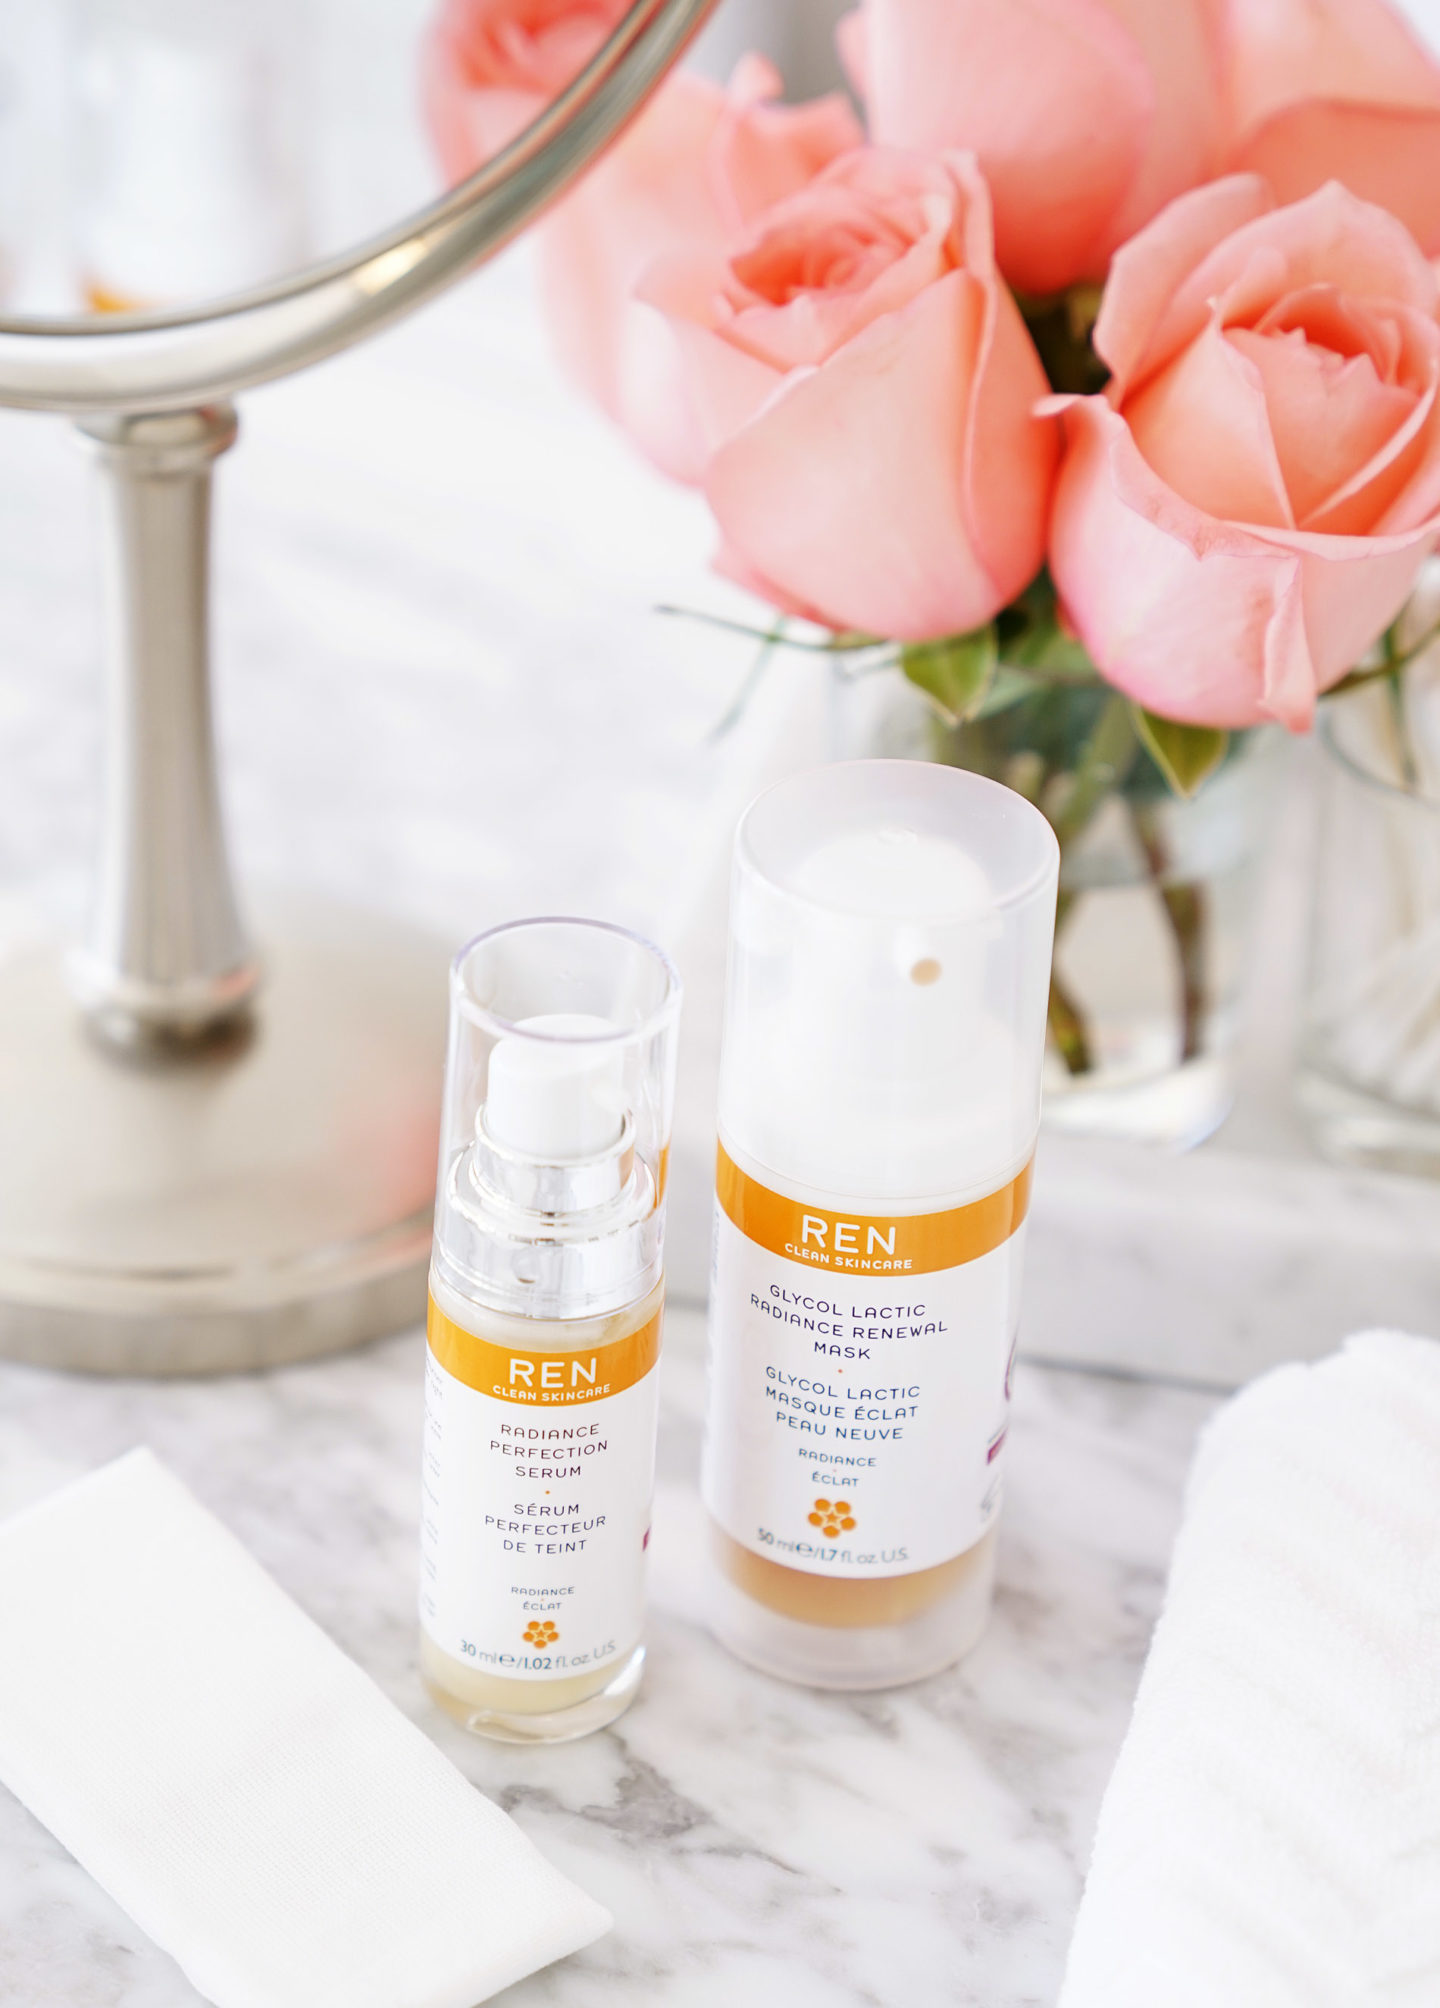 REN Clean Skincare Glycol Lactic Radiance Renewal Mask and Radiance Perfection Serum Review